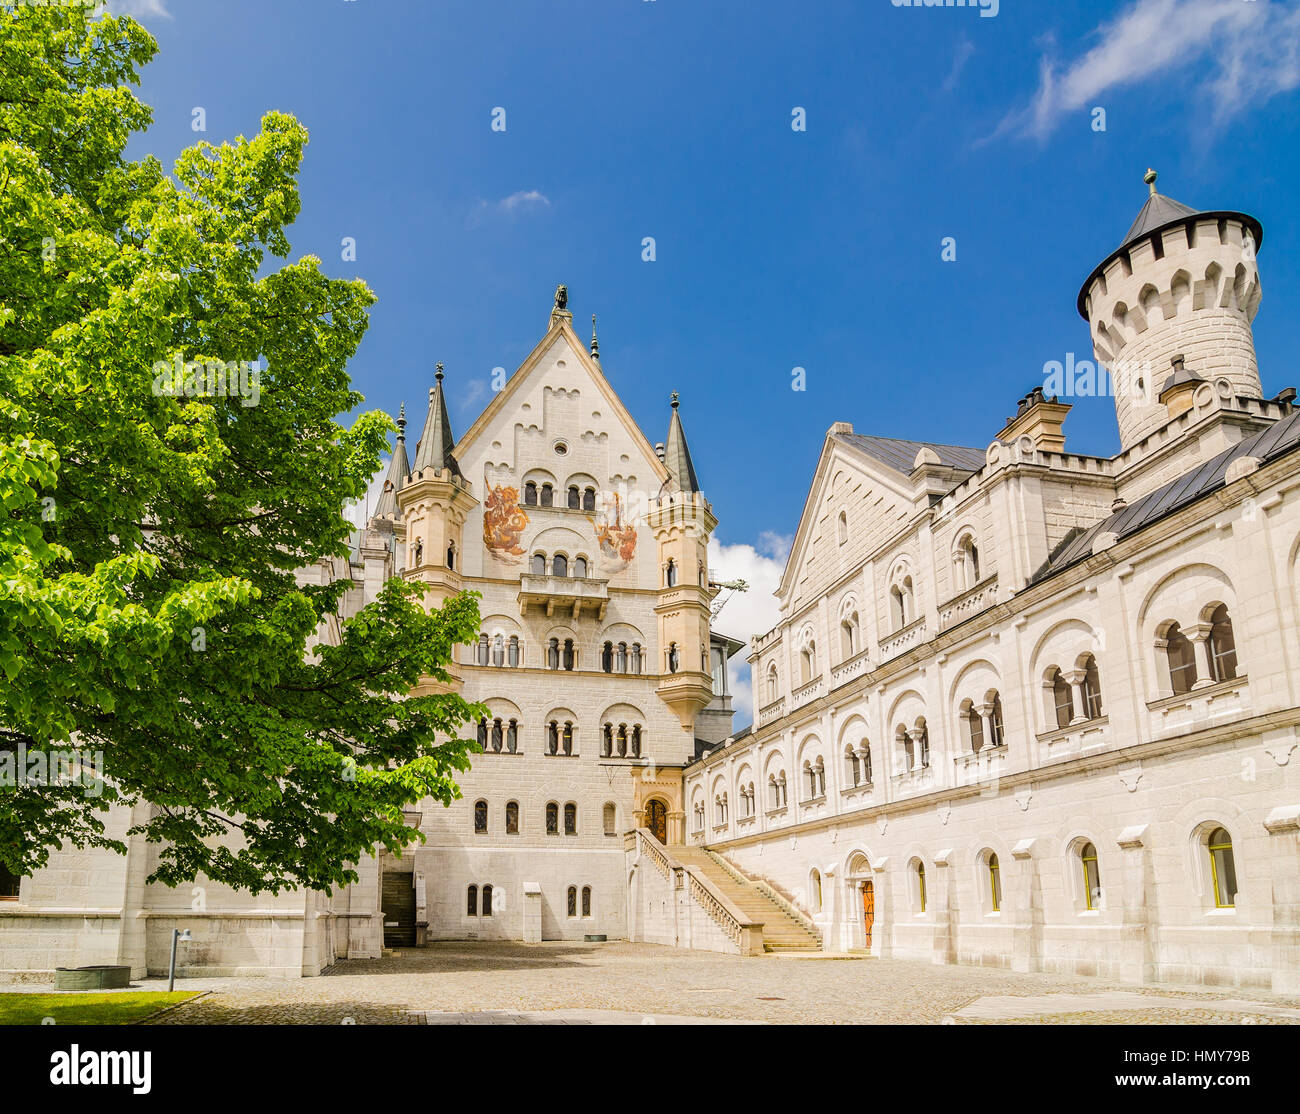 Neuschwanstein Castle is a nineteenth-century Romanesque Revival palace on a rugged hill above the village of Hohenschwangau - Stock Image